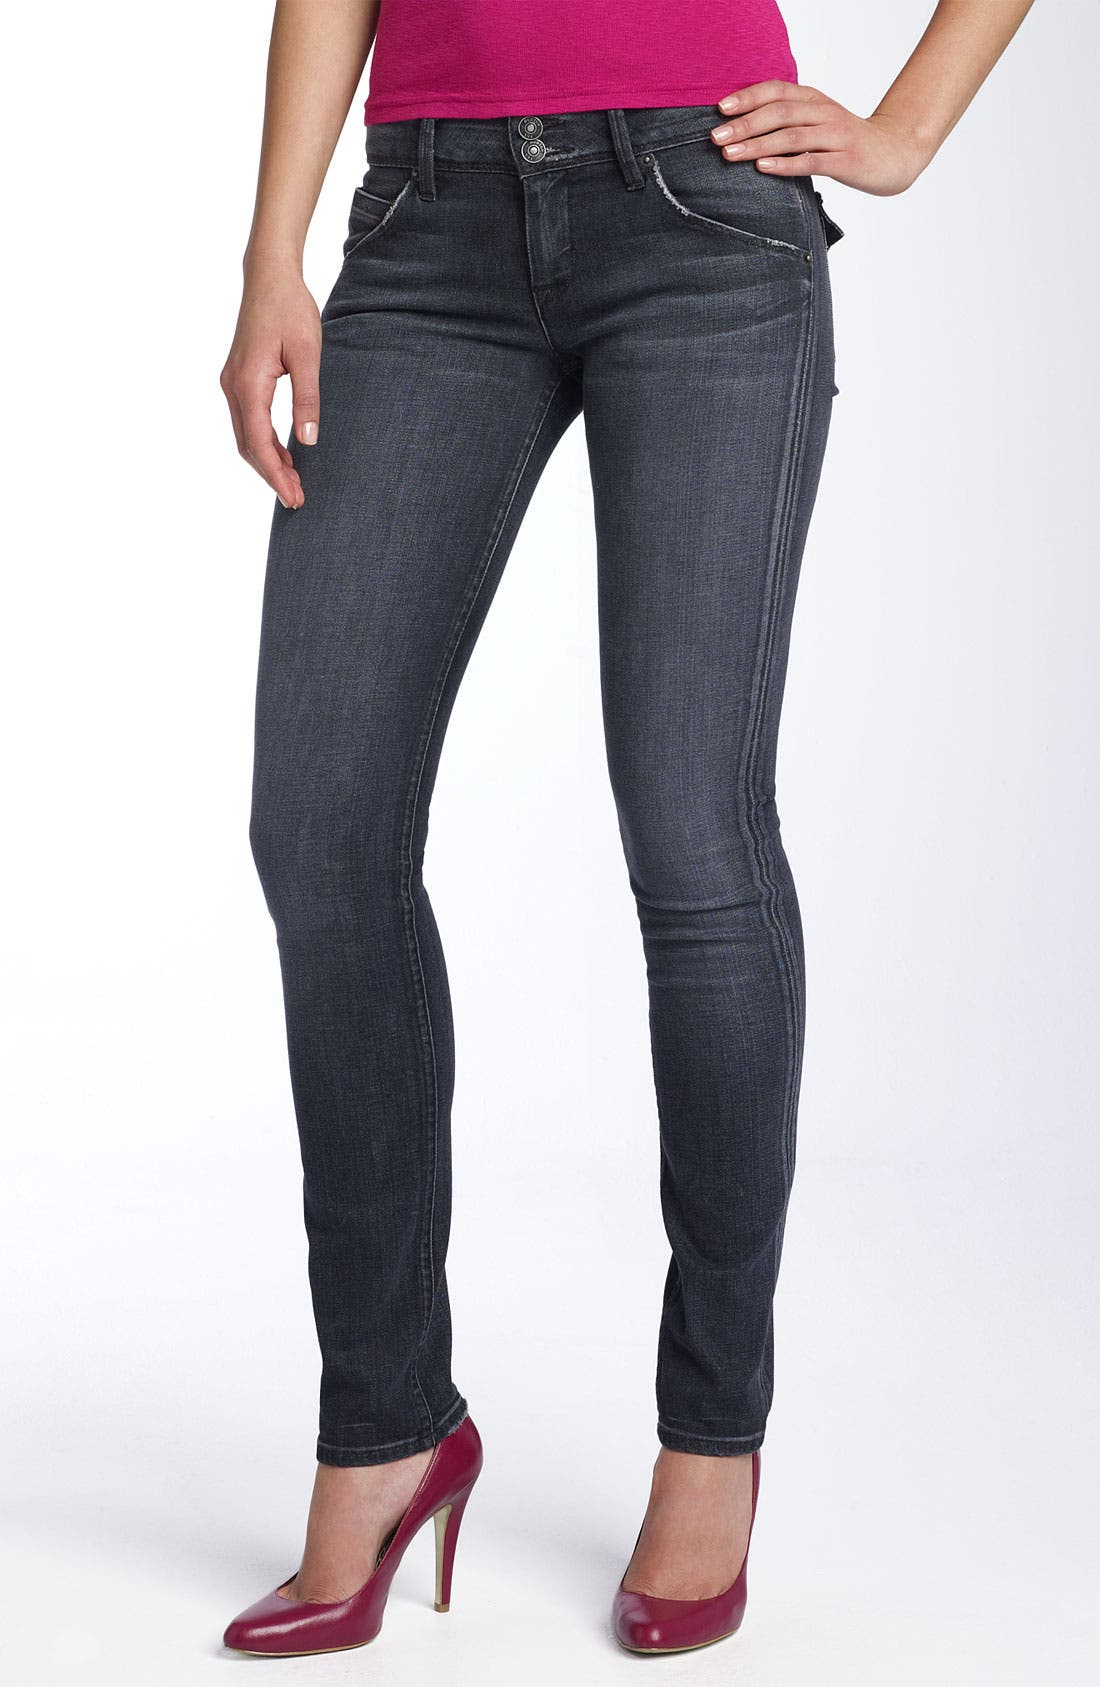 'Collin' Skinny Jeans,                         Main,                         color, 017